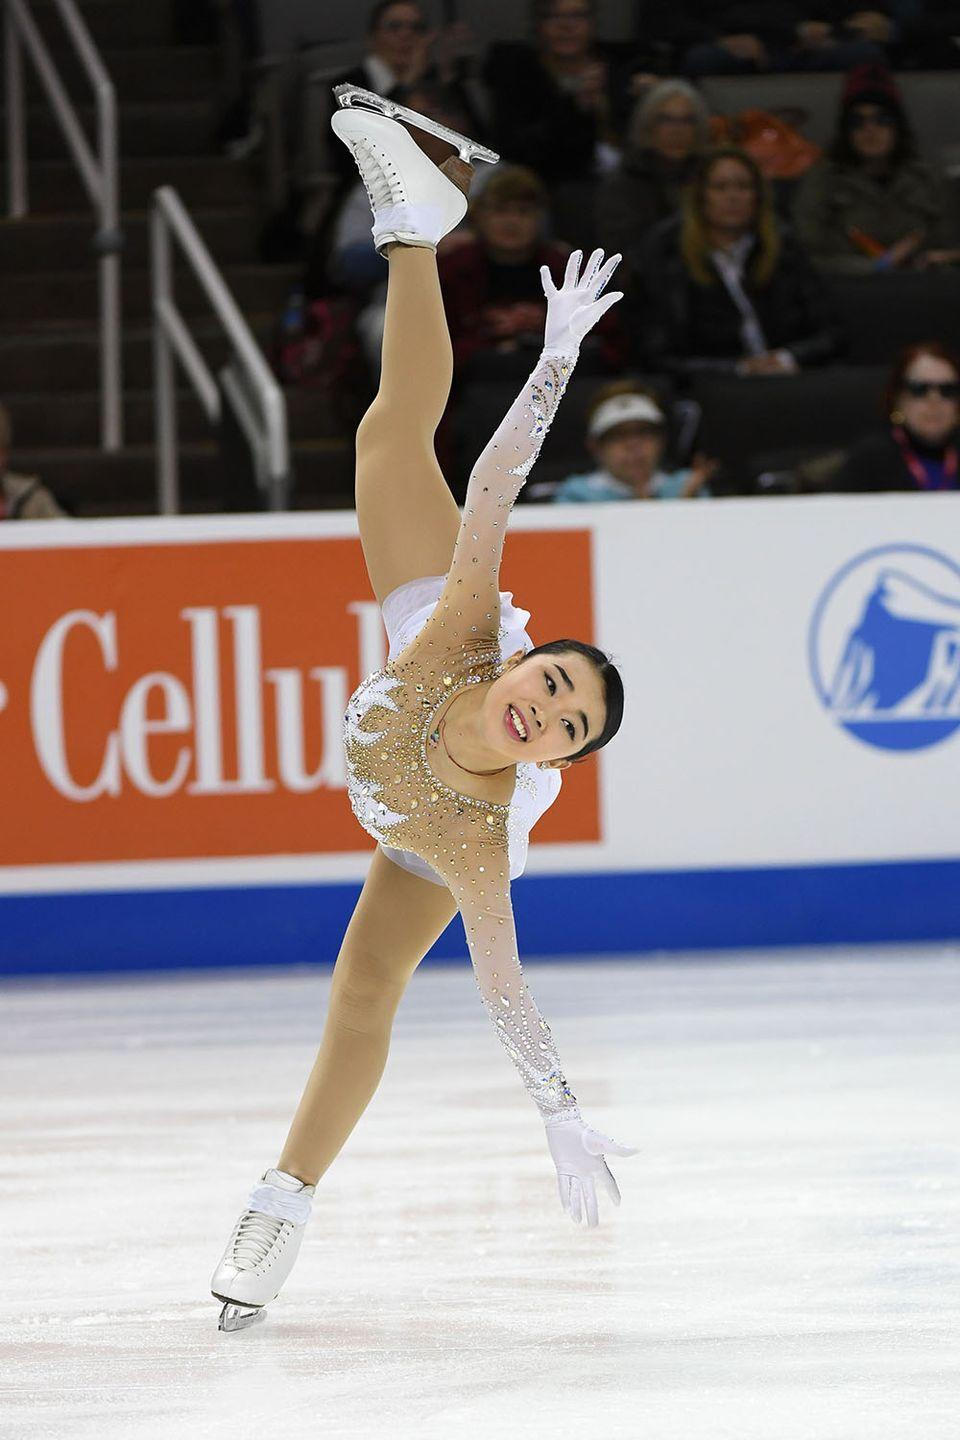 <p><strong>Age: </strong>18</p><p><strong>Hometown:</strong> Fremont, CA</p><p><strong>Event:</strong> Figure Skating</p><p>Karen Chen's days are dedicated to two main things: Training and studying. The 18-year-old figure skating is serious about getting her schoolwork done, but nearly every other waking moment is spent stretching, foam rolling, practicing on the ice or exercising away from the rink.</p>